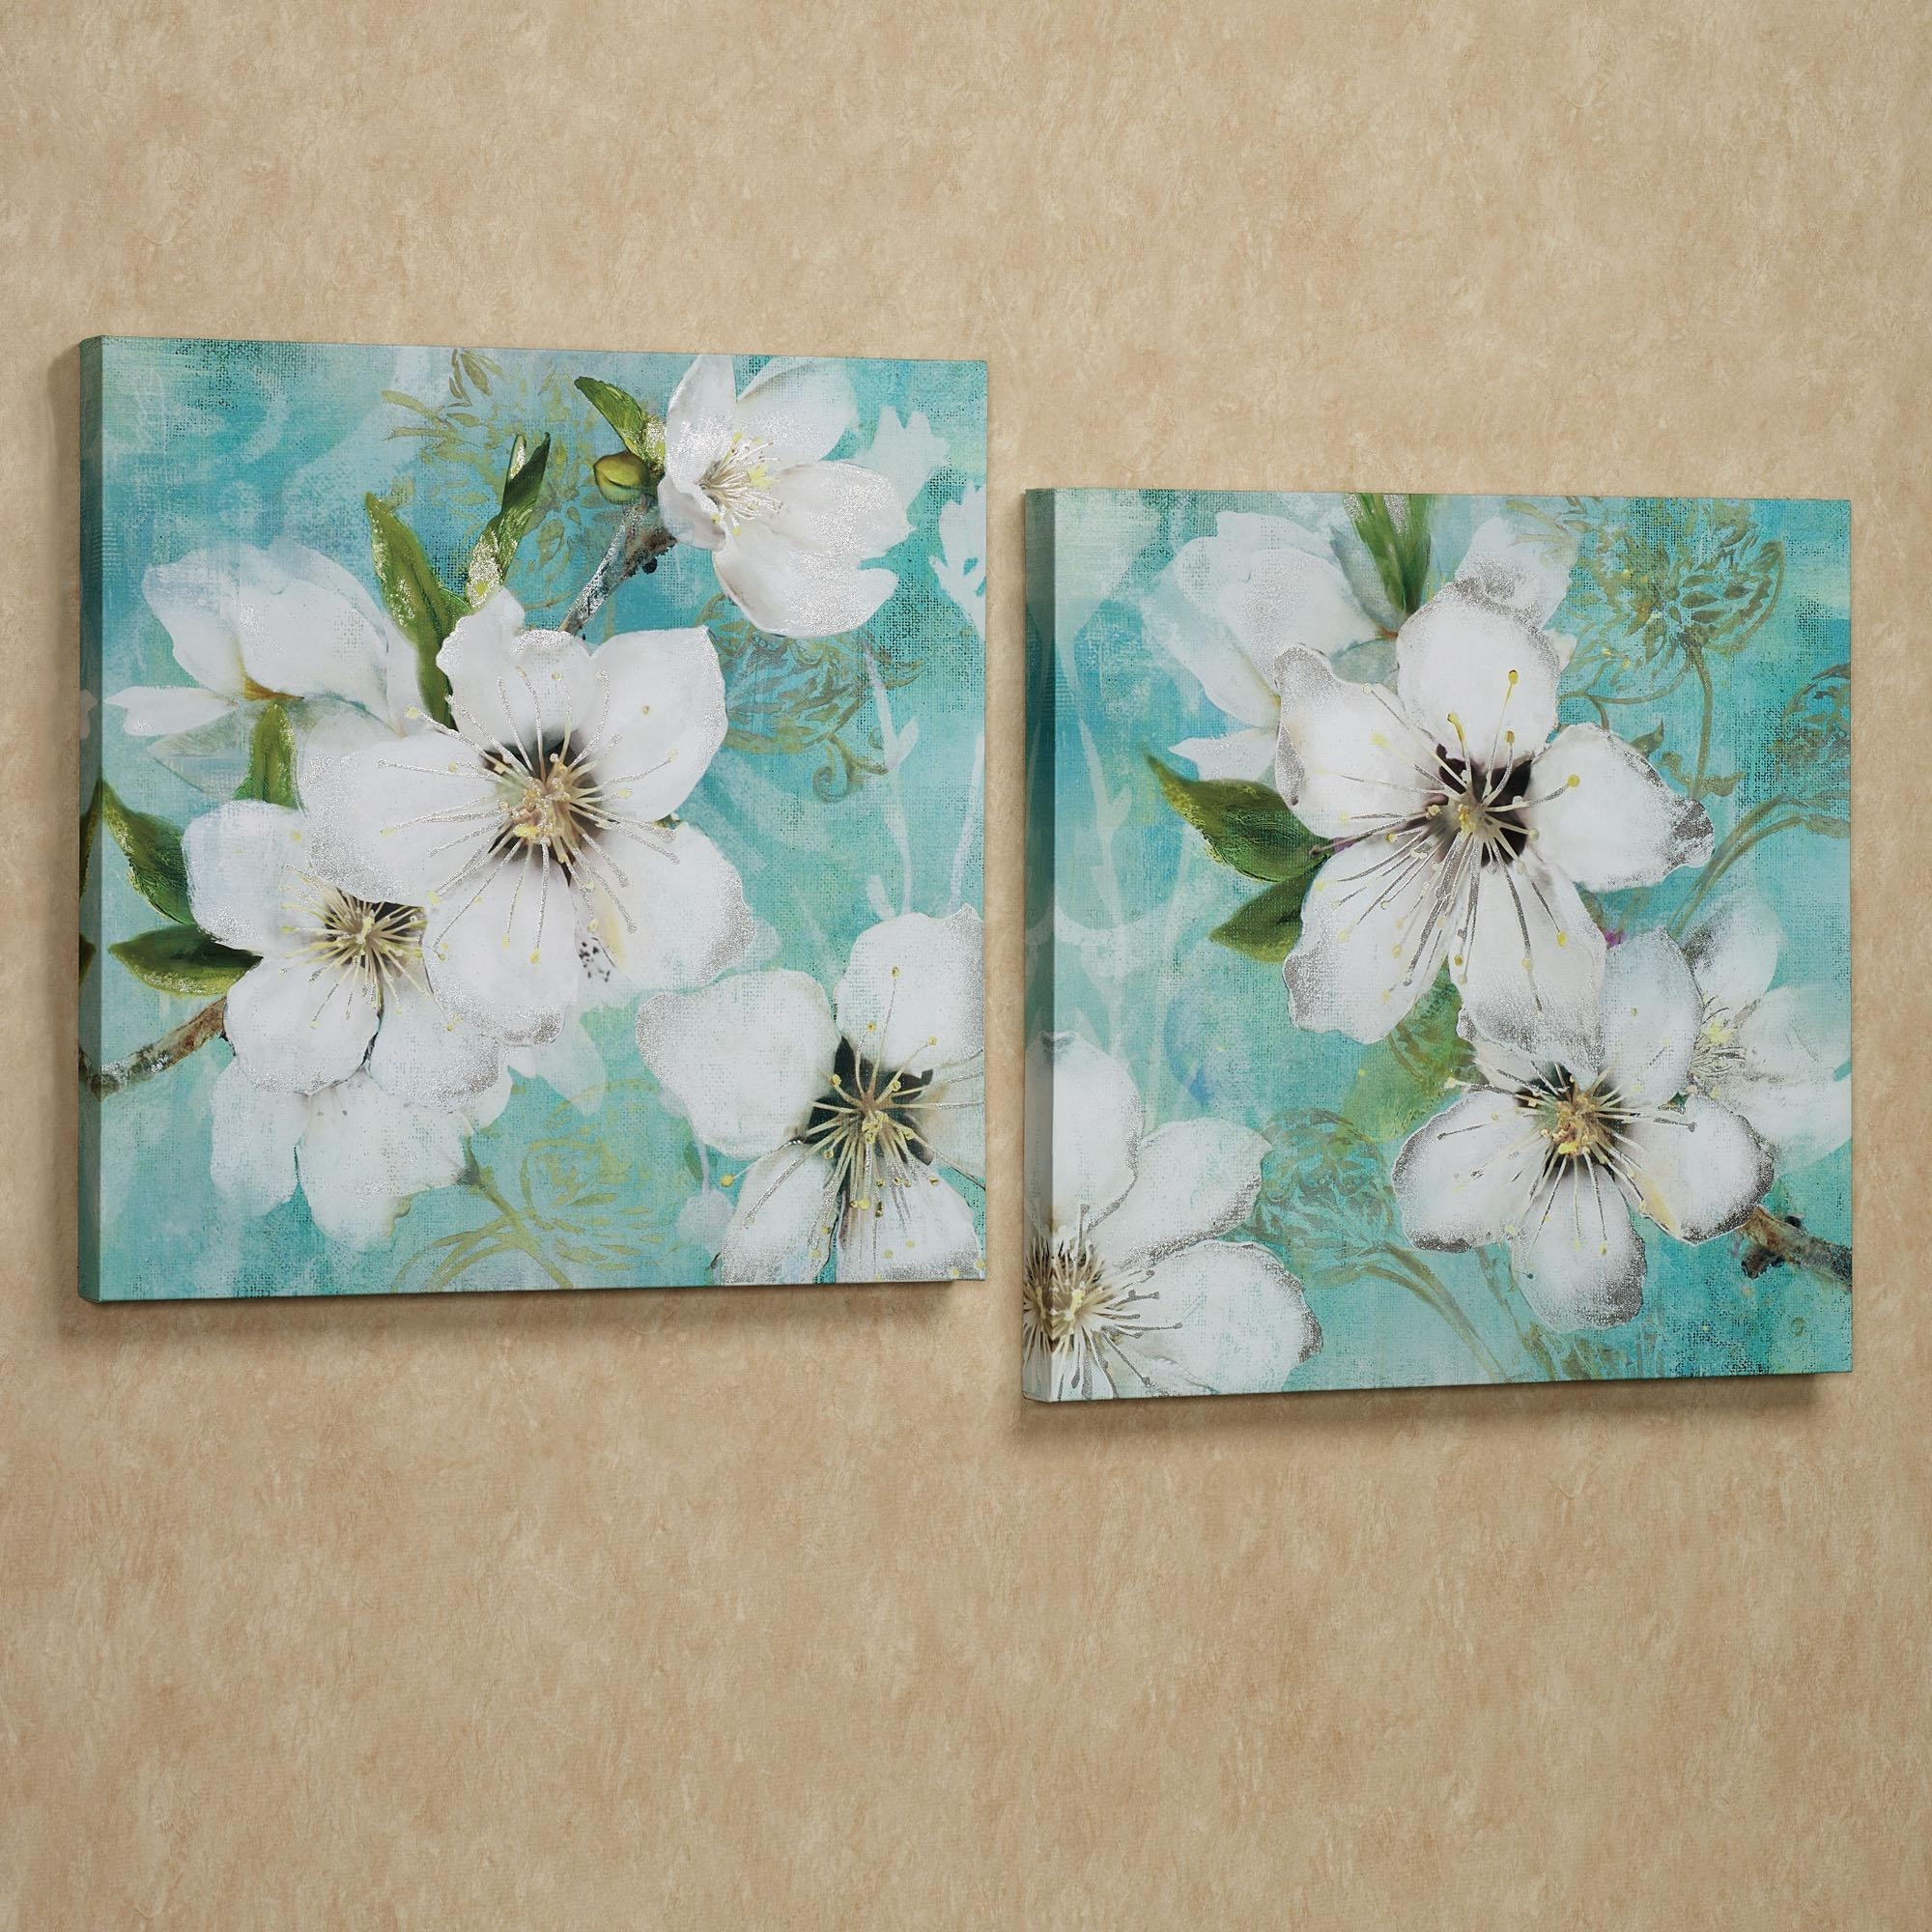 Wall Art Designs: Awesome Floral Wall Art Canvas Metal Flowers Intended For Floral Wall Art Canvas (View 19 of 20)